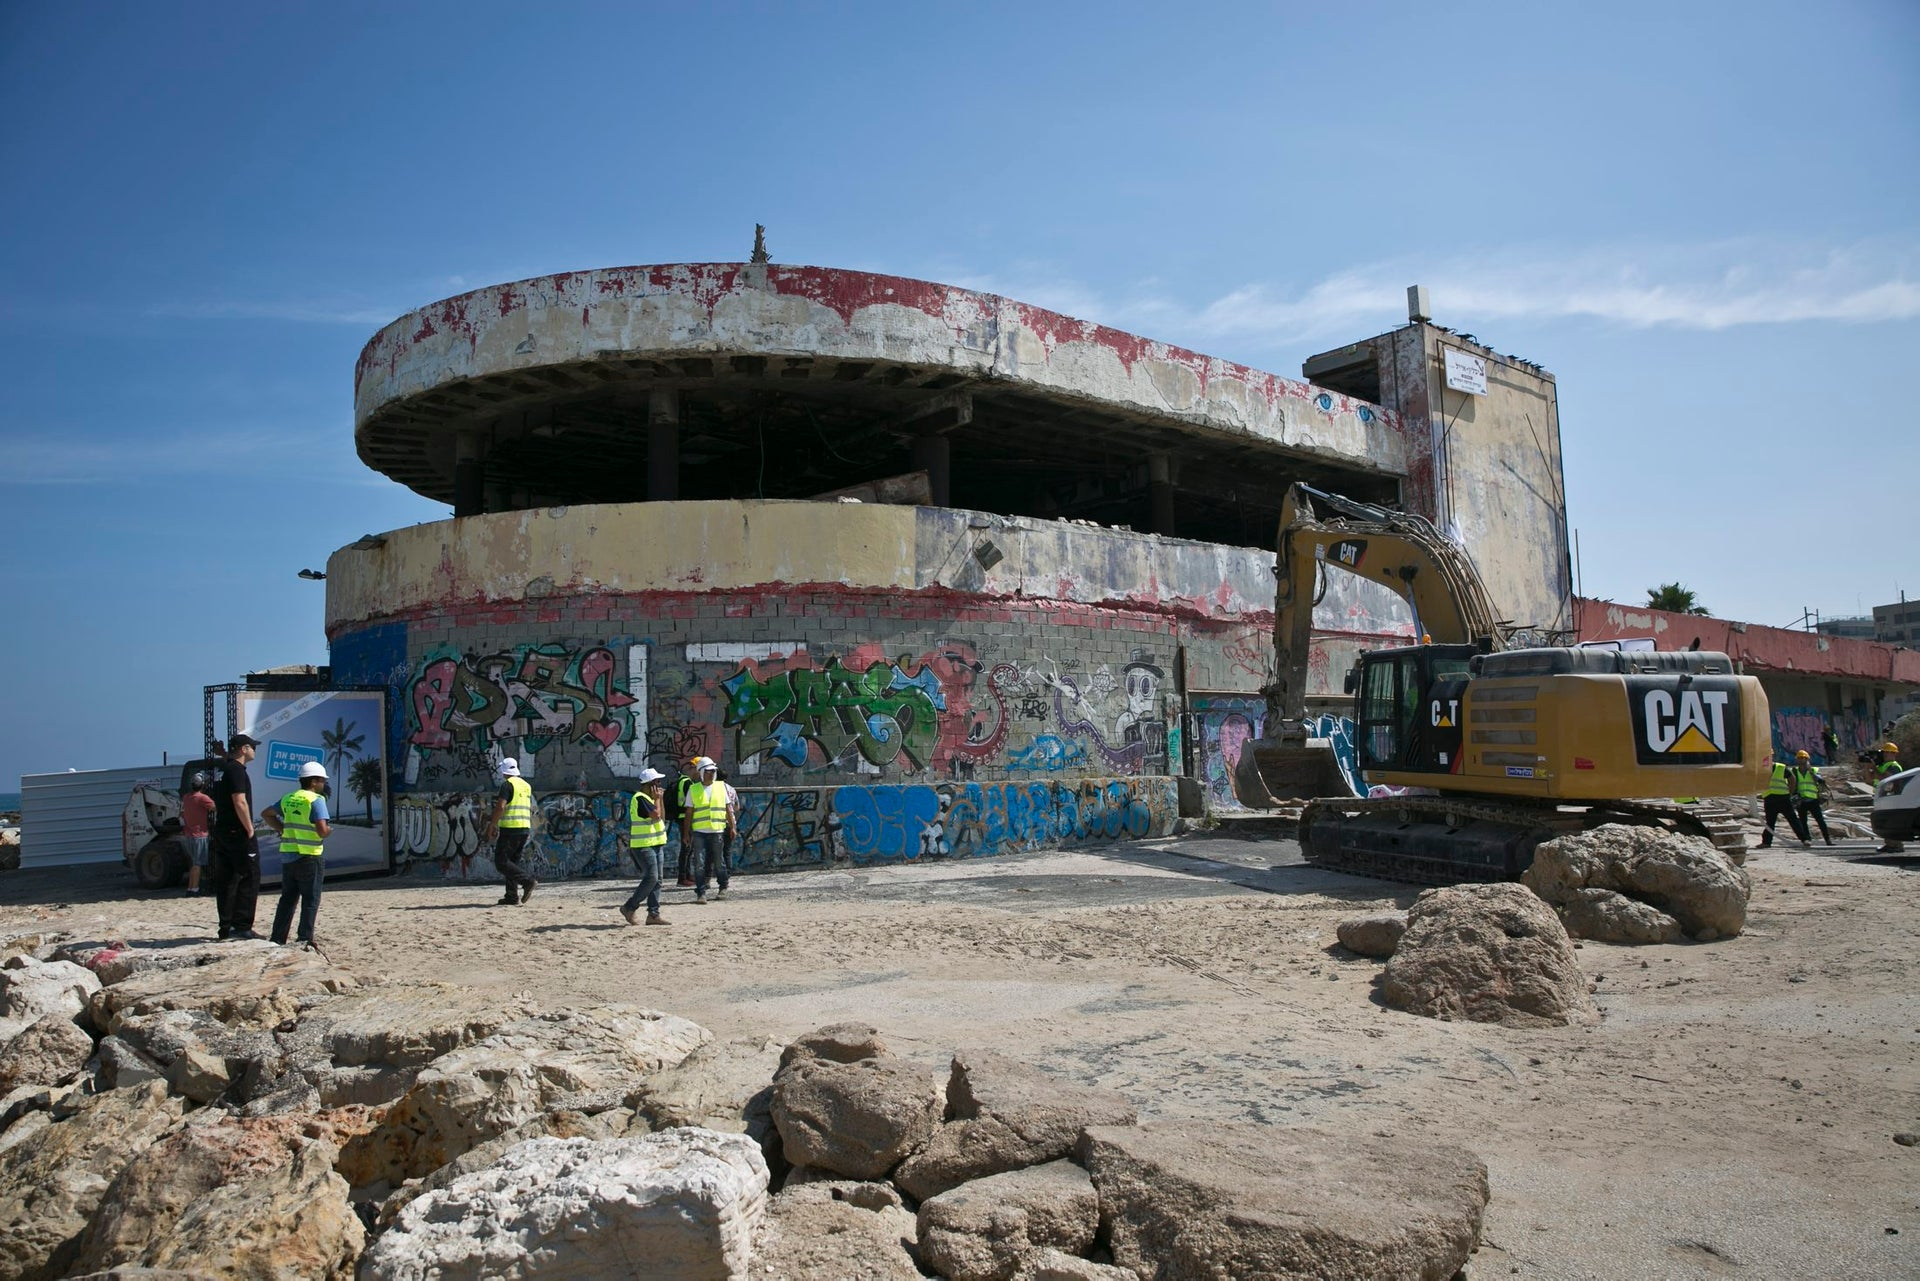 Tel Aviv's Dolphinarium, the site of a 2001 suicide bombing, is being demolished. Sky-rises and a recreation center will take its place.